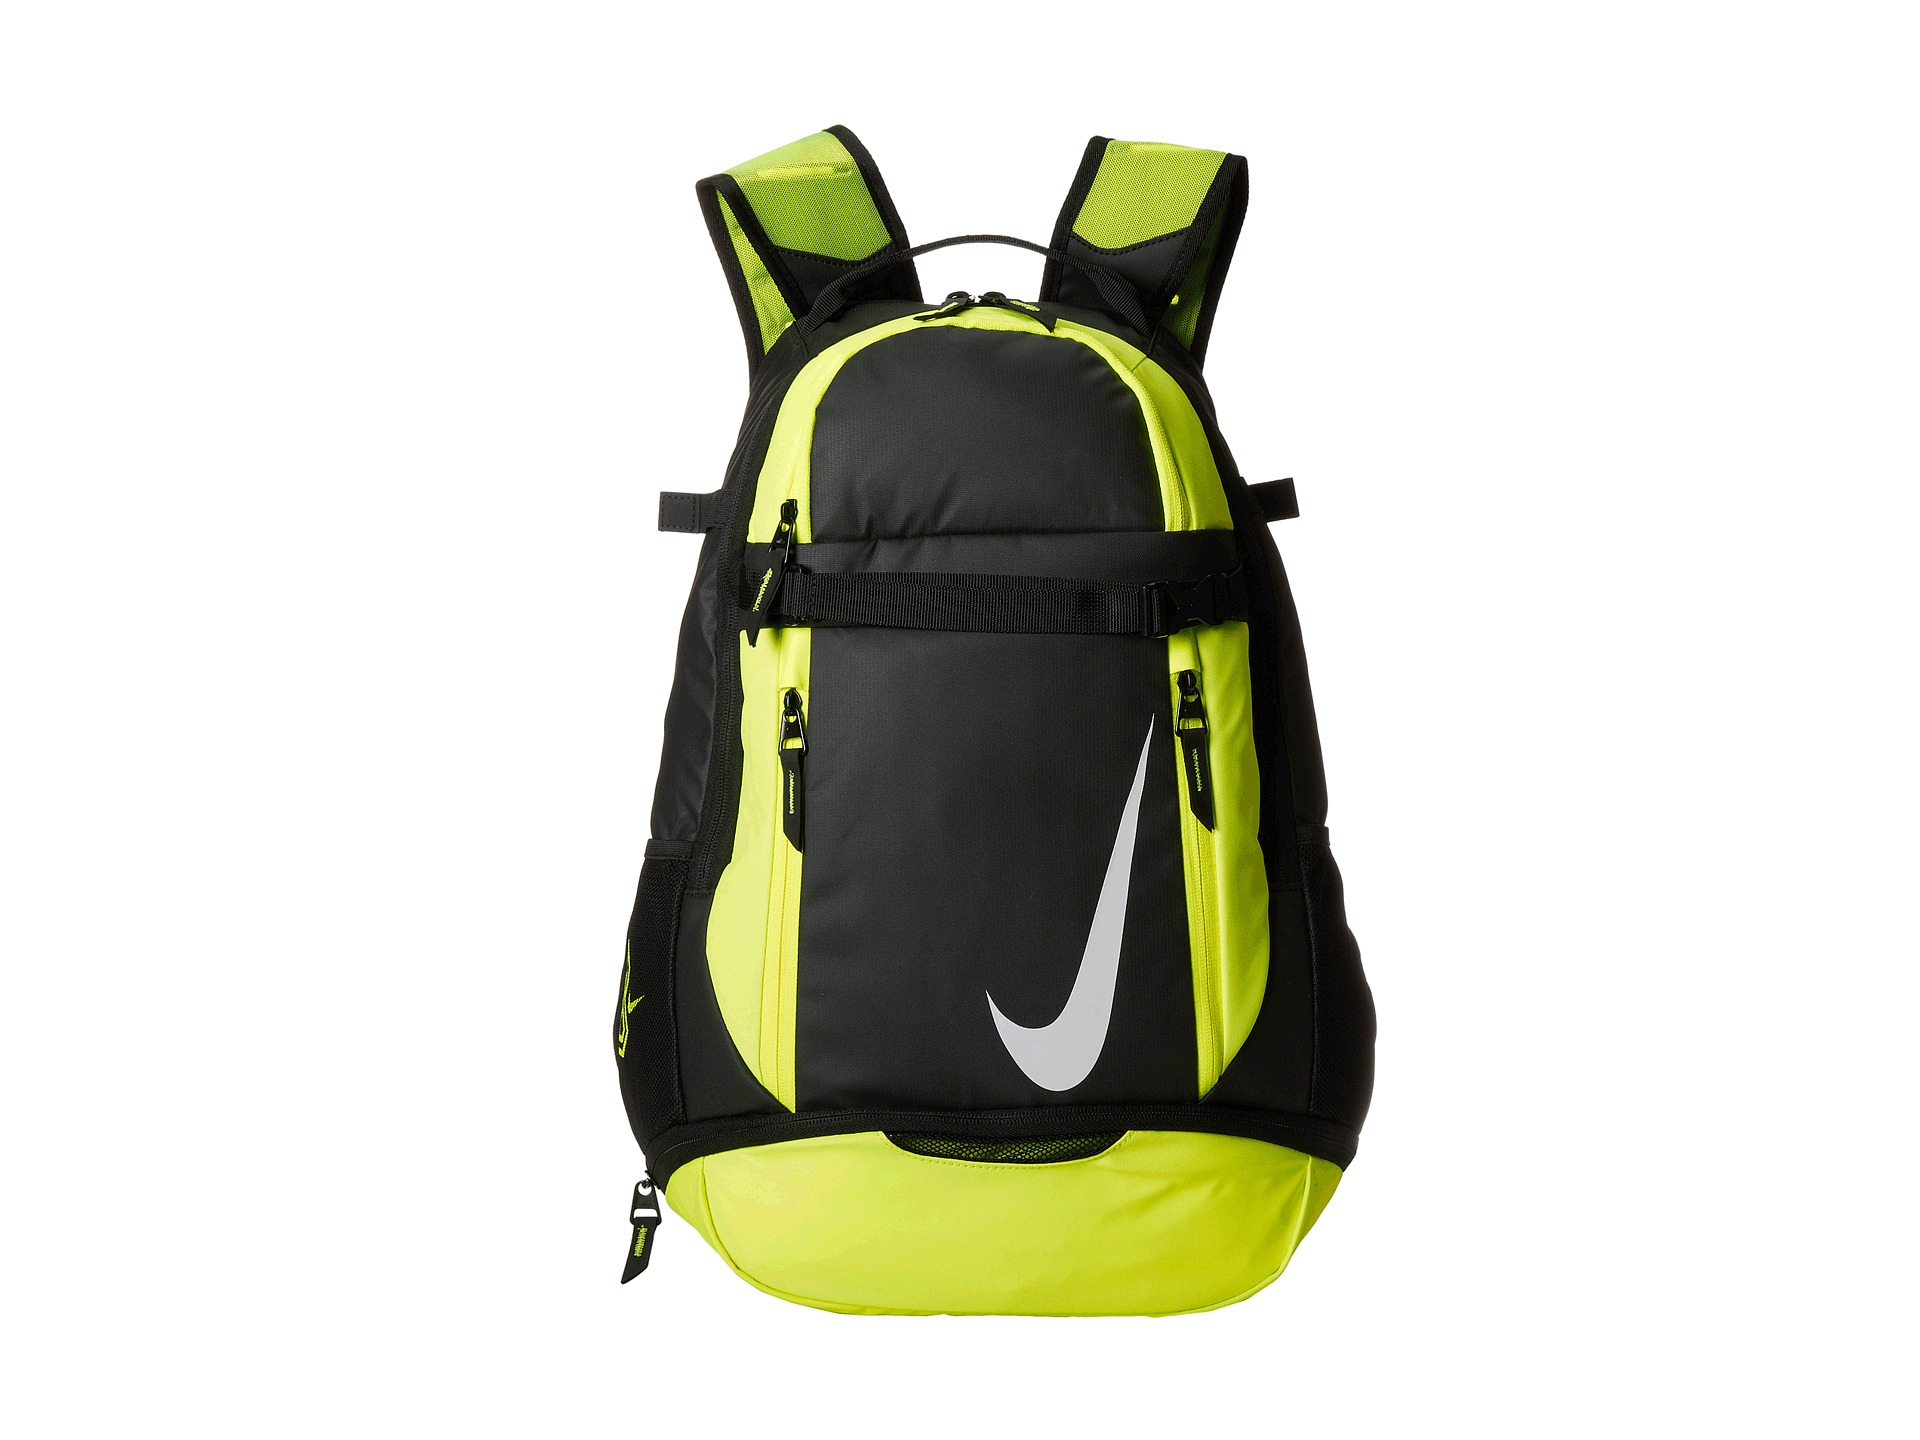 lyst nike vapor elite backpack in green